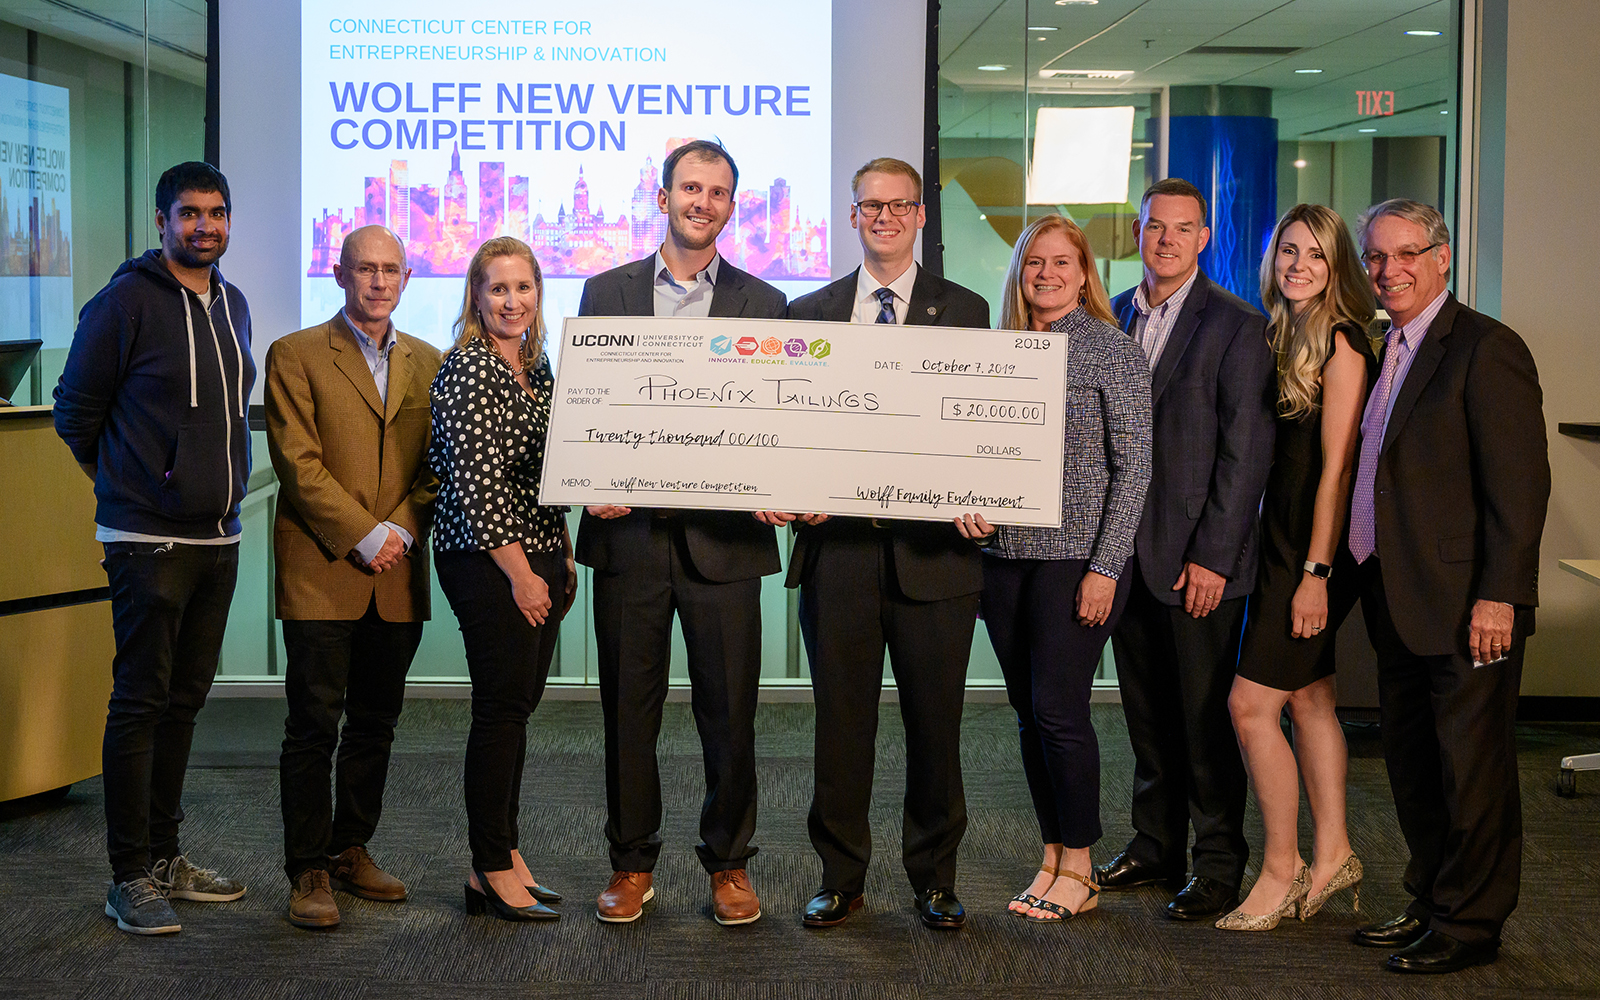 Phoenix Tailings, the group that won the 2019 Wolff New Venture Competition, poses for group photos with the judges. (Evan Olson/UConn Photo)